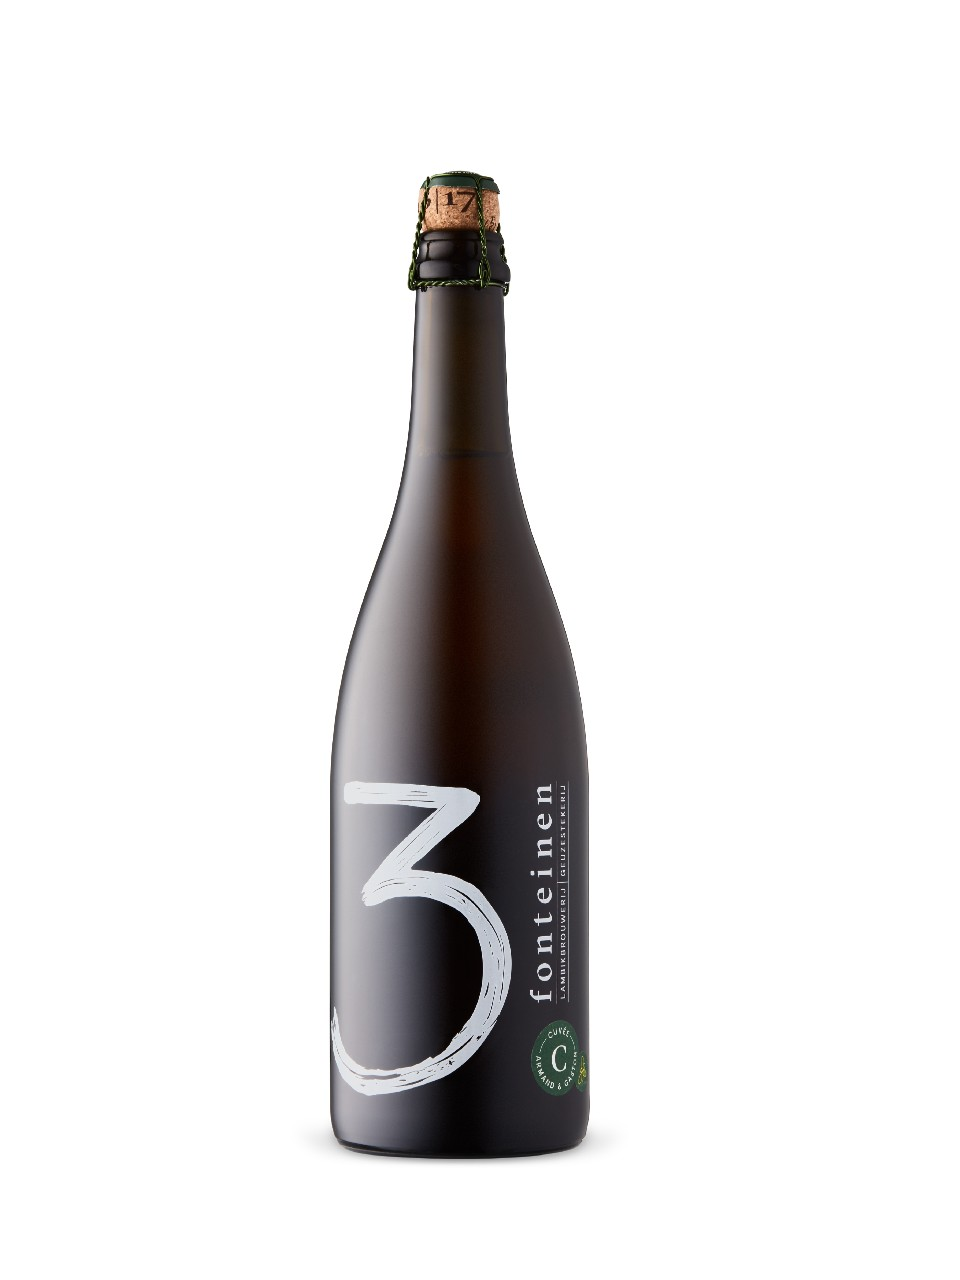 Image for 3 Fonteinen Cuvee Armand & Gaston Geuze from LCBO